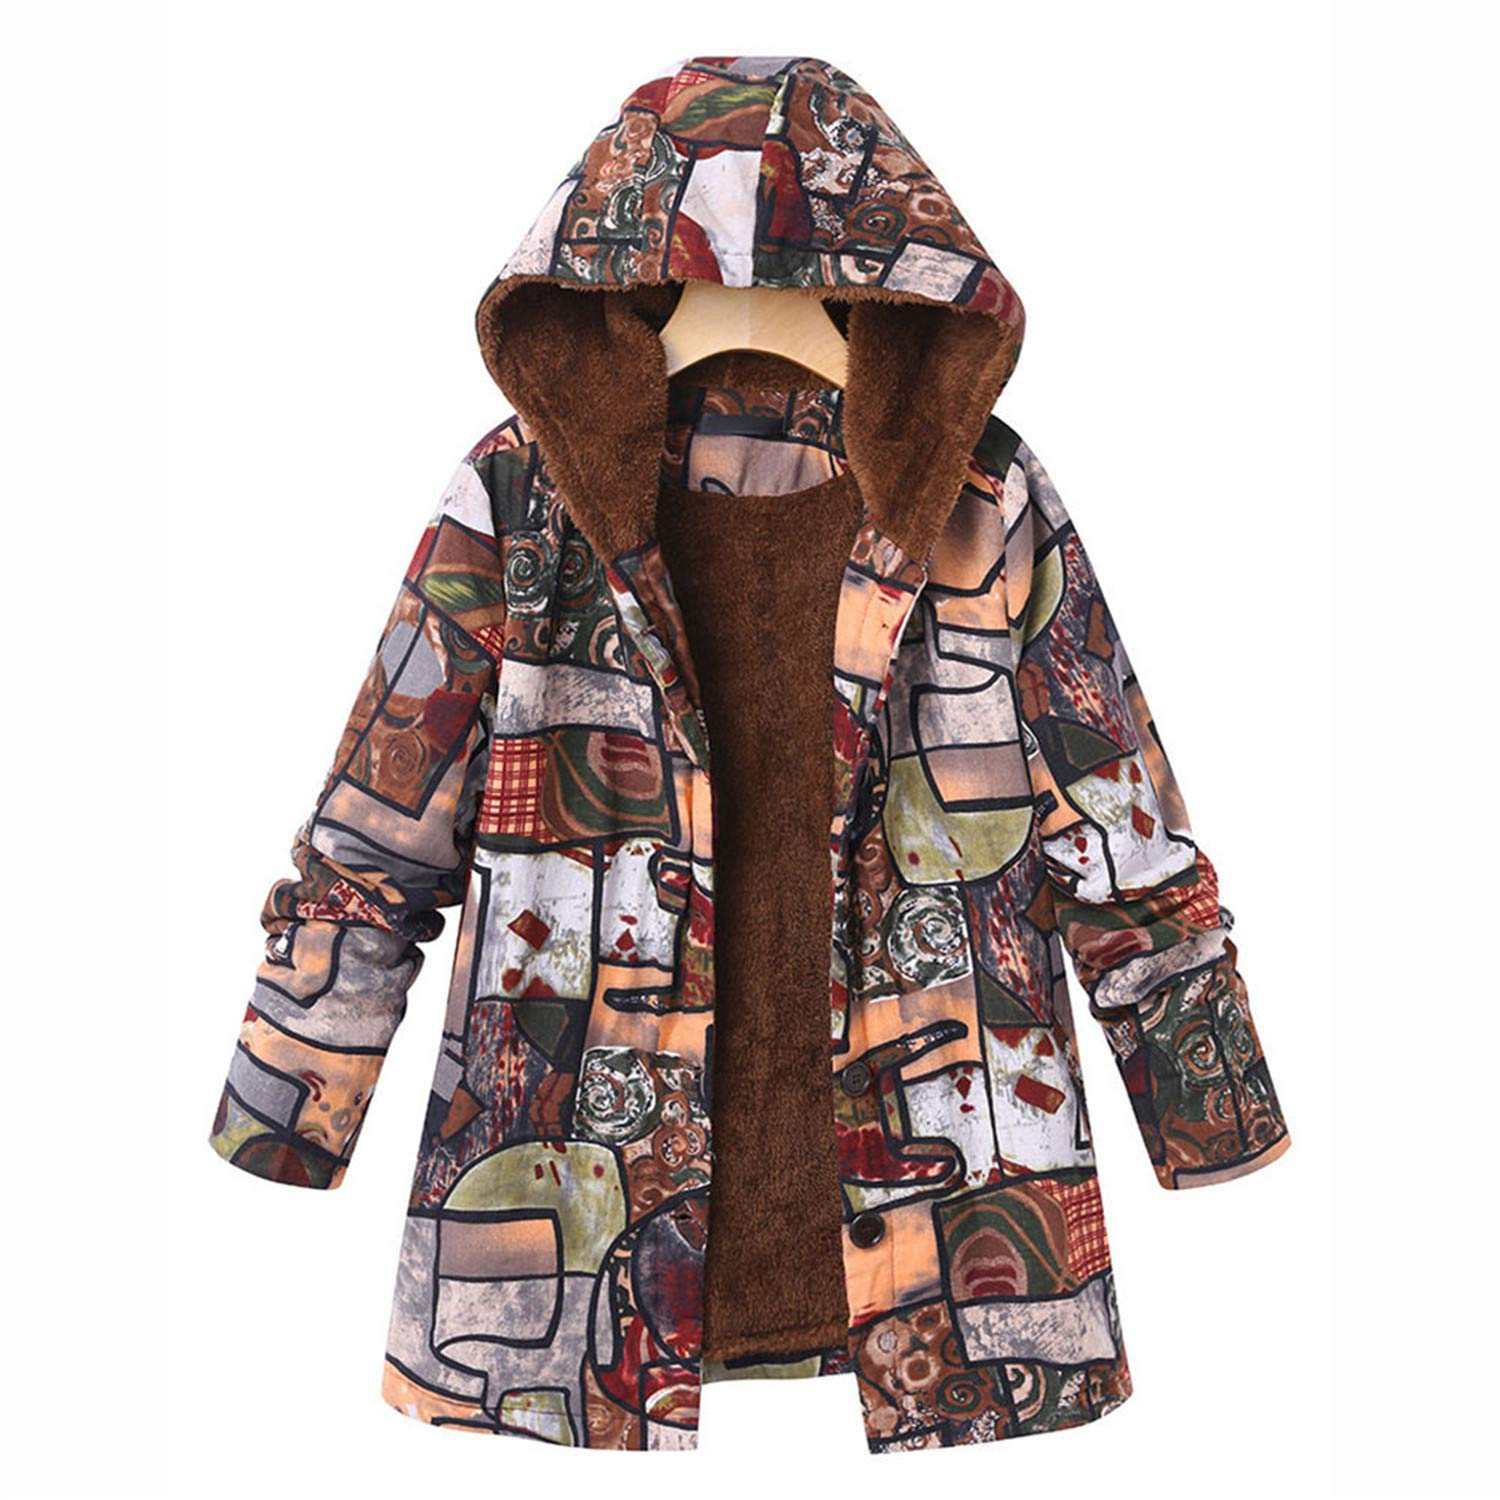 Amazon.com: Coats and Jackets Women Winter Warm Outwear ...